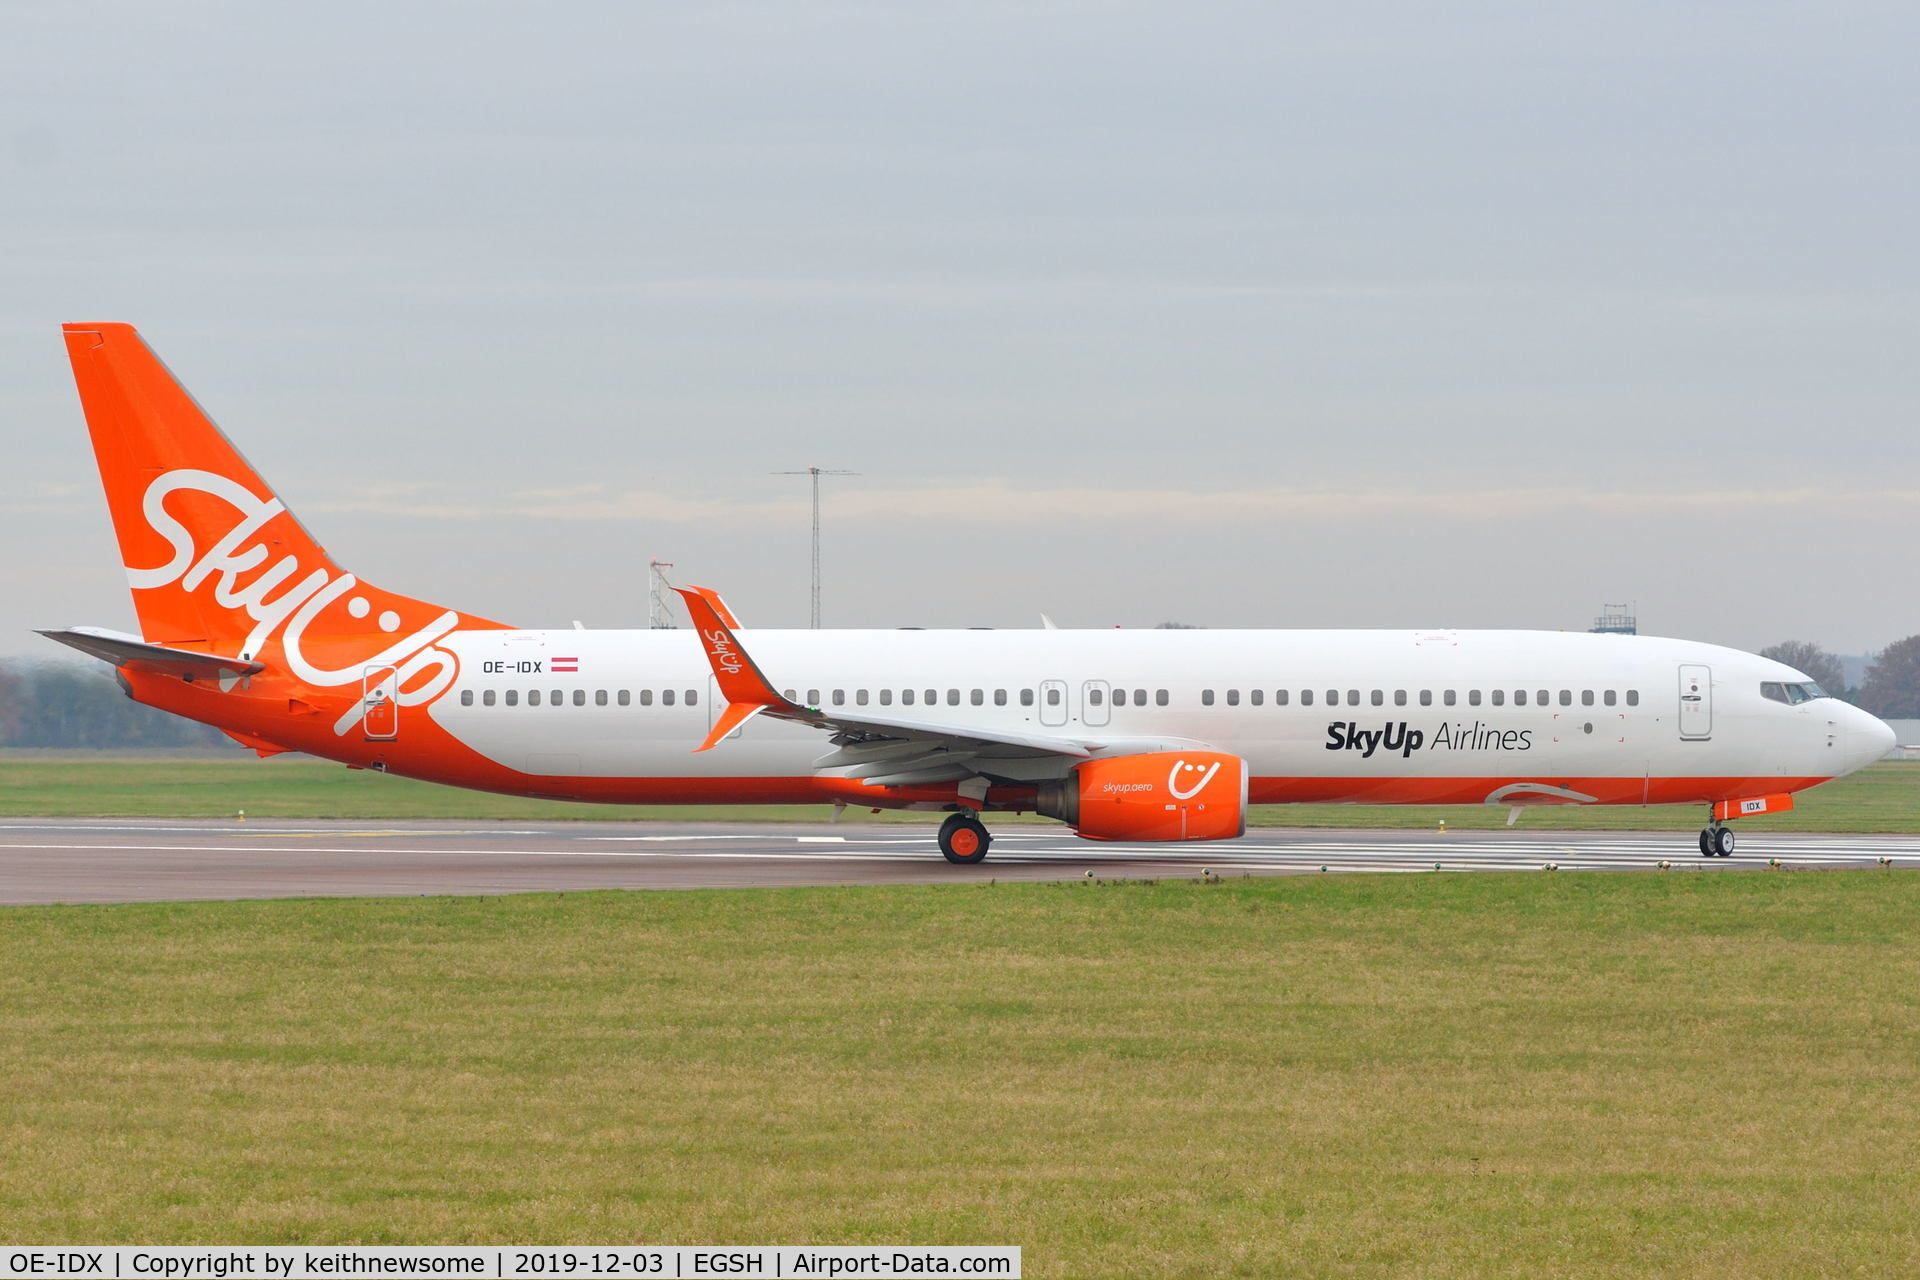 OE-IDX, 2008 Boeing 737-900/ER C/N 35225, Leaving Norwich for small air test prior to returning to Lasham.